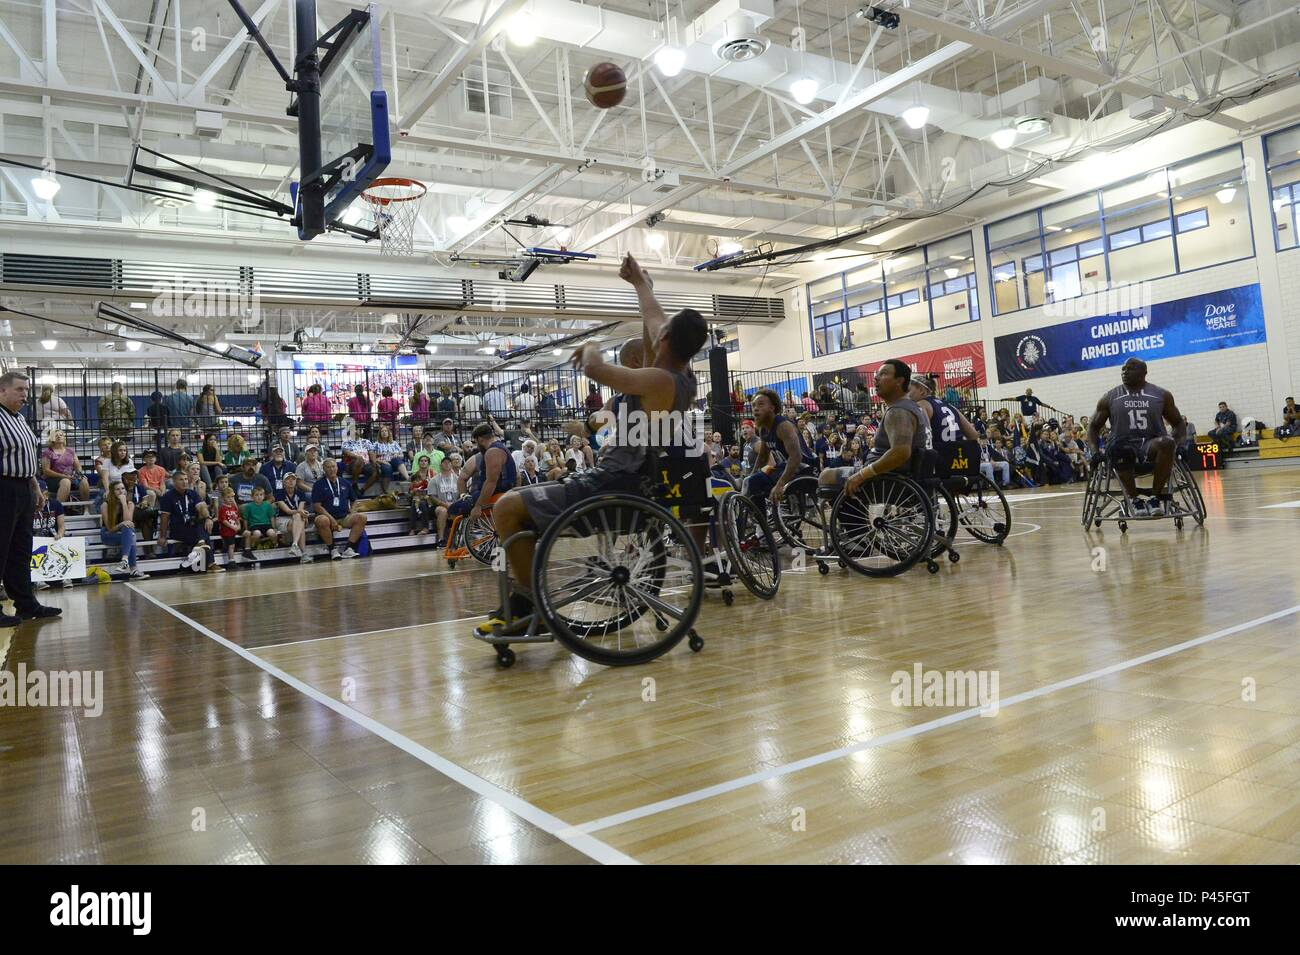 Army Spc, June 4, 2018. Vairon Caicedo Ocampo from Team SOCOM takes a shot against Navy in the wheelchair basketball game during the 2018 Warrior Games held at the Air Force Academy in Colorado Springs June 4, 2018. Several members of Team SOCOM advanced to the finals. Created in 2010, the DoD Warrior Games introduce wounded, ill and injured service members and veterans to Paralympic-style sports. Warrior Games showcases the resilient spirit of today's wounded, ill or injured service members from all branches of the military. These athletes have overcome significant physical and behavioral inj - Stock Image